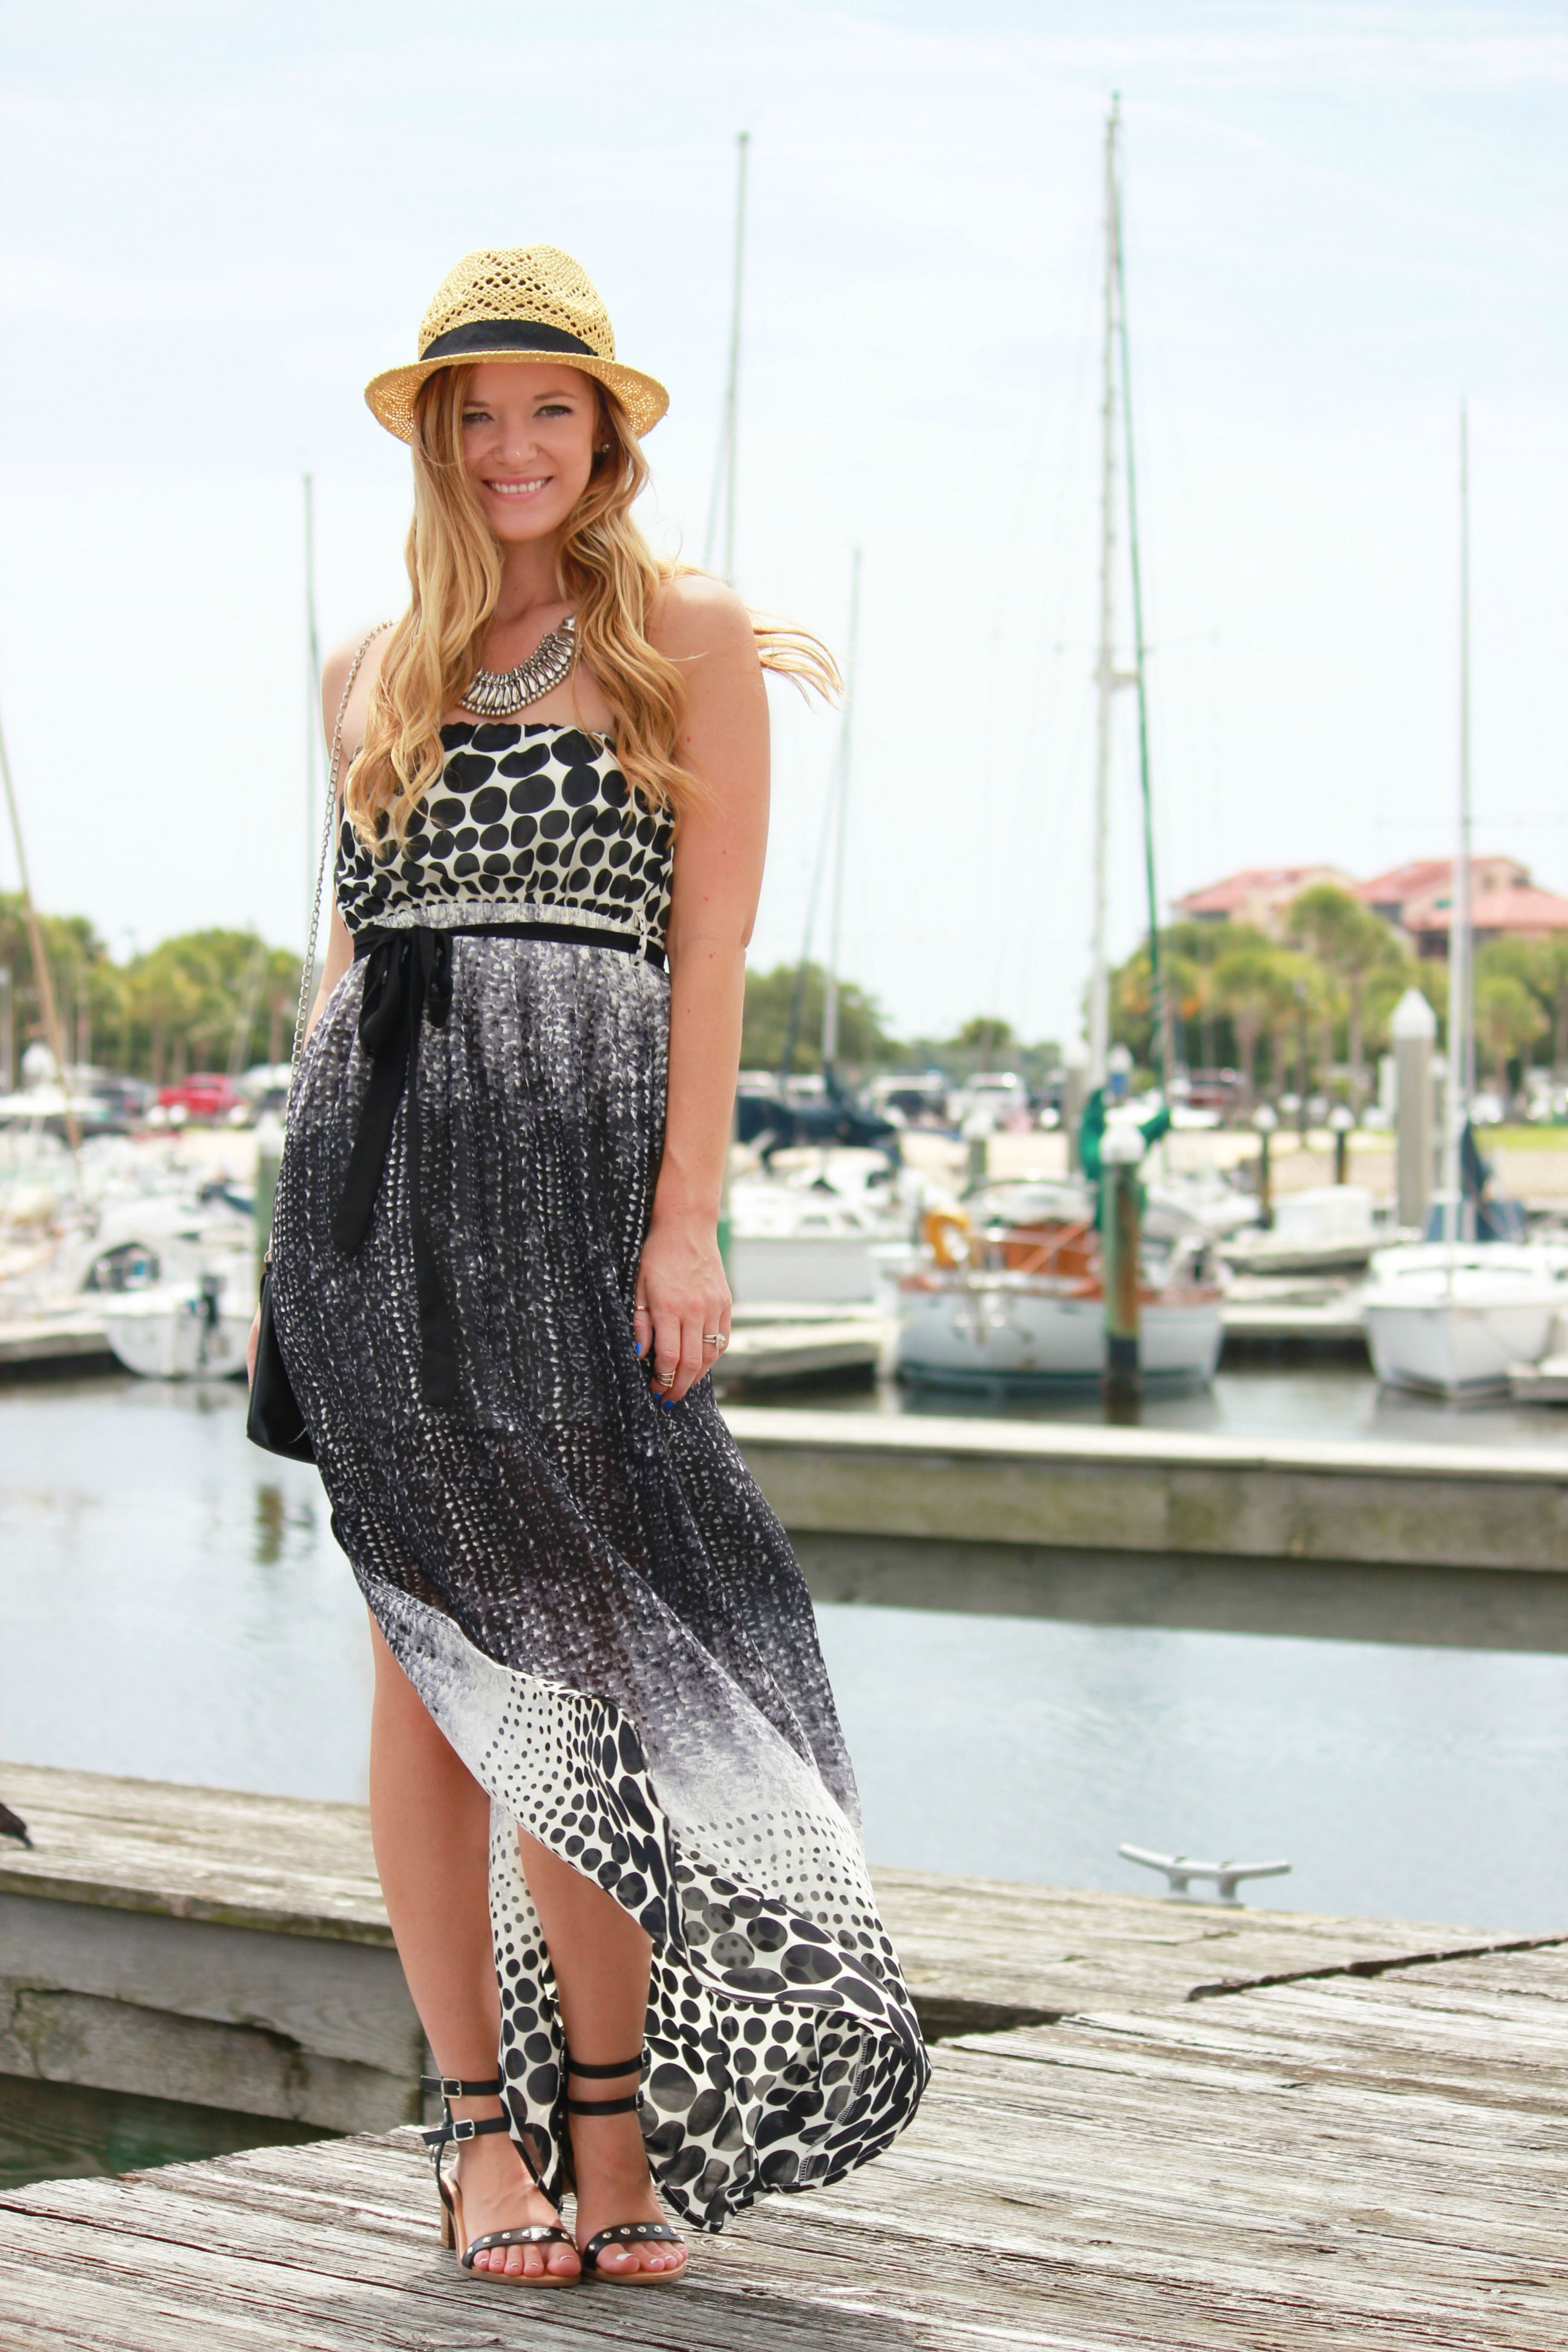 sugar love boutique maxi dress, black and white maxi dress, summer outfit, vacation outfit, studded sandals, boat outfit, forever 21 hat